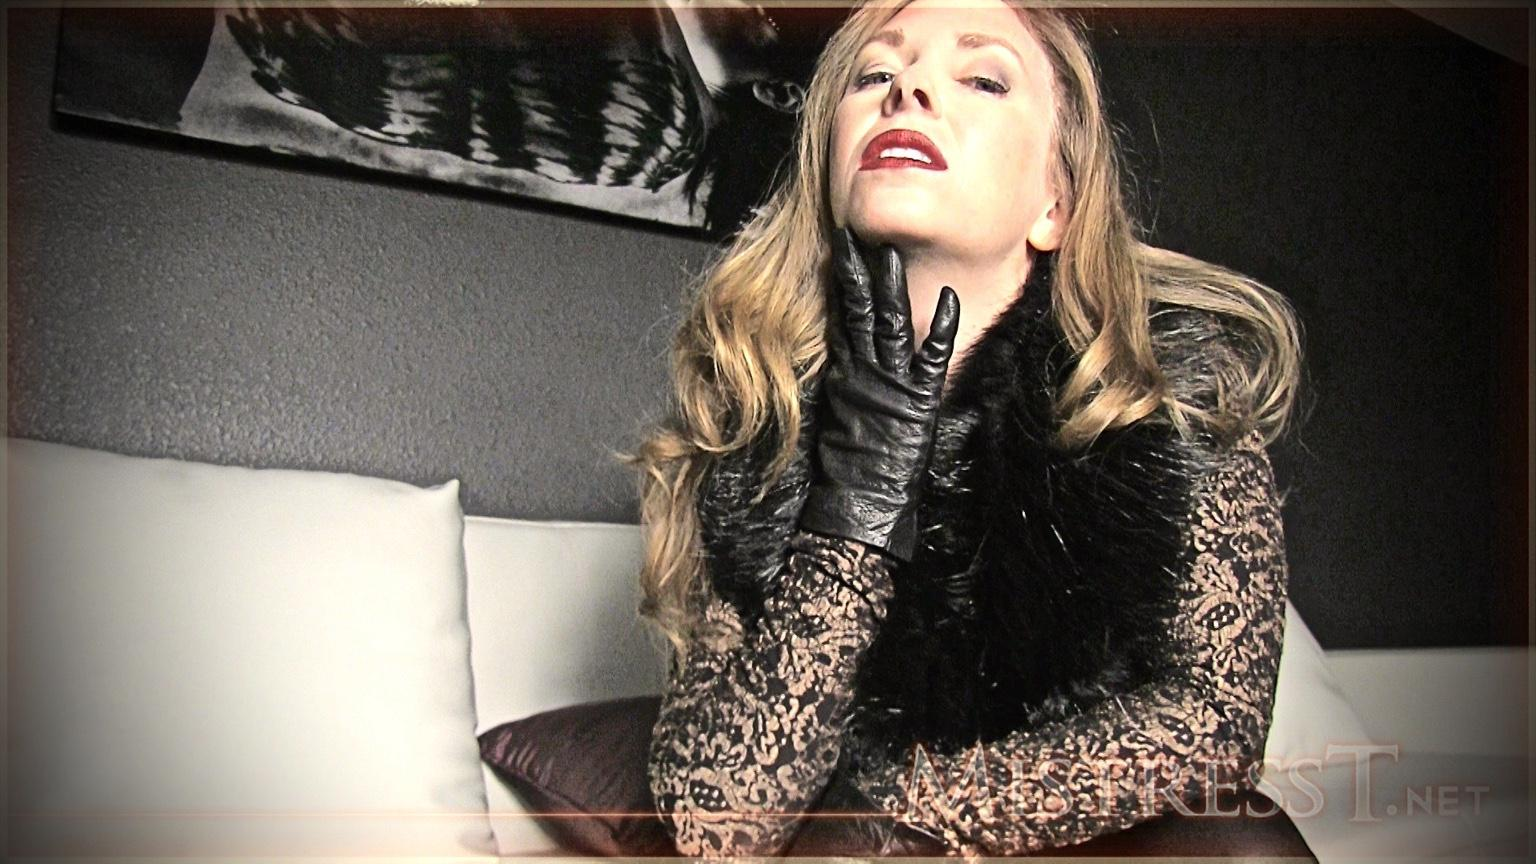 Speaking, Mistress t leather gloves agree